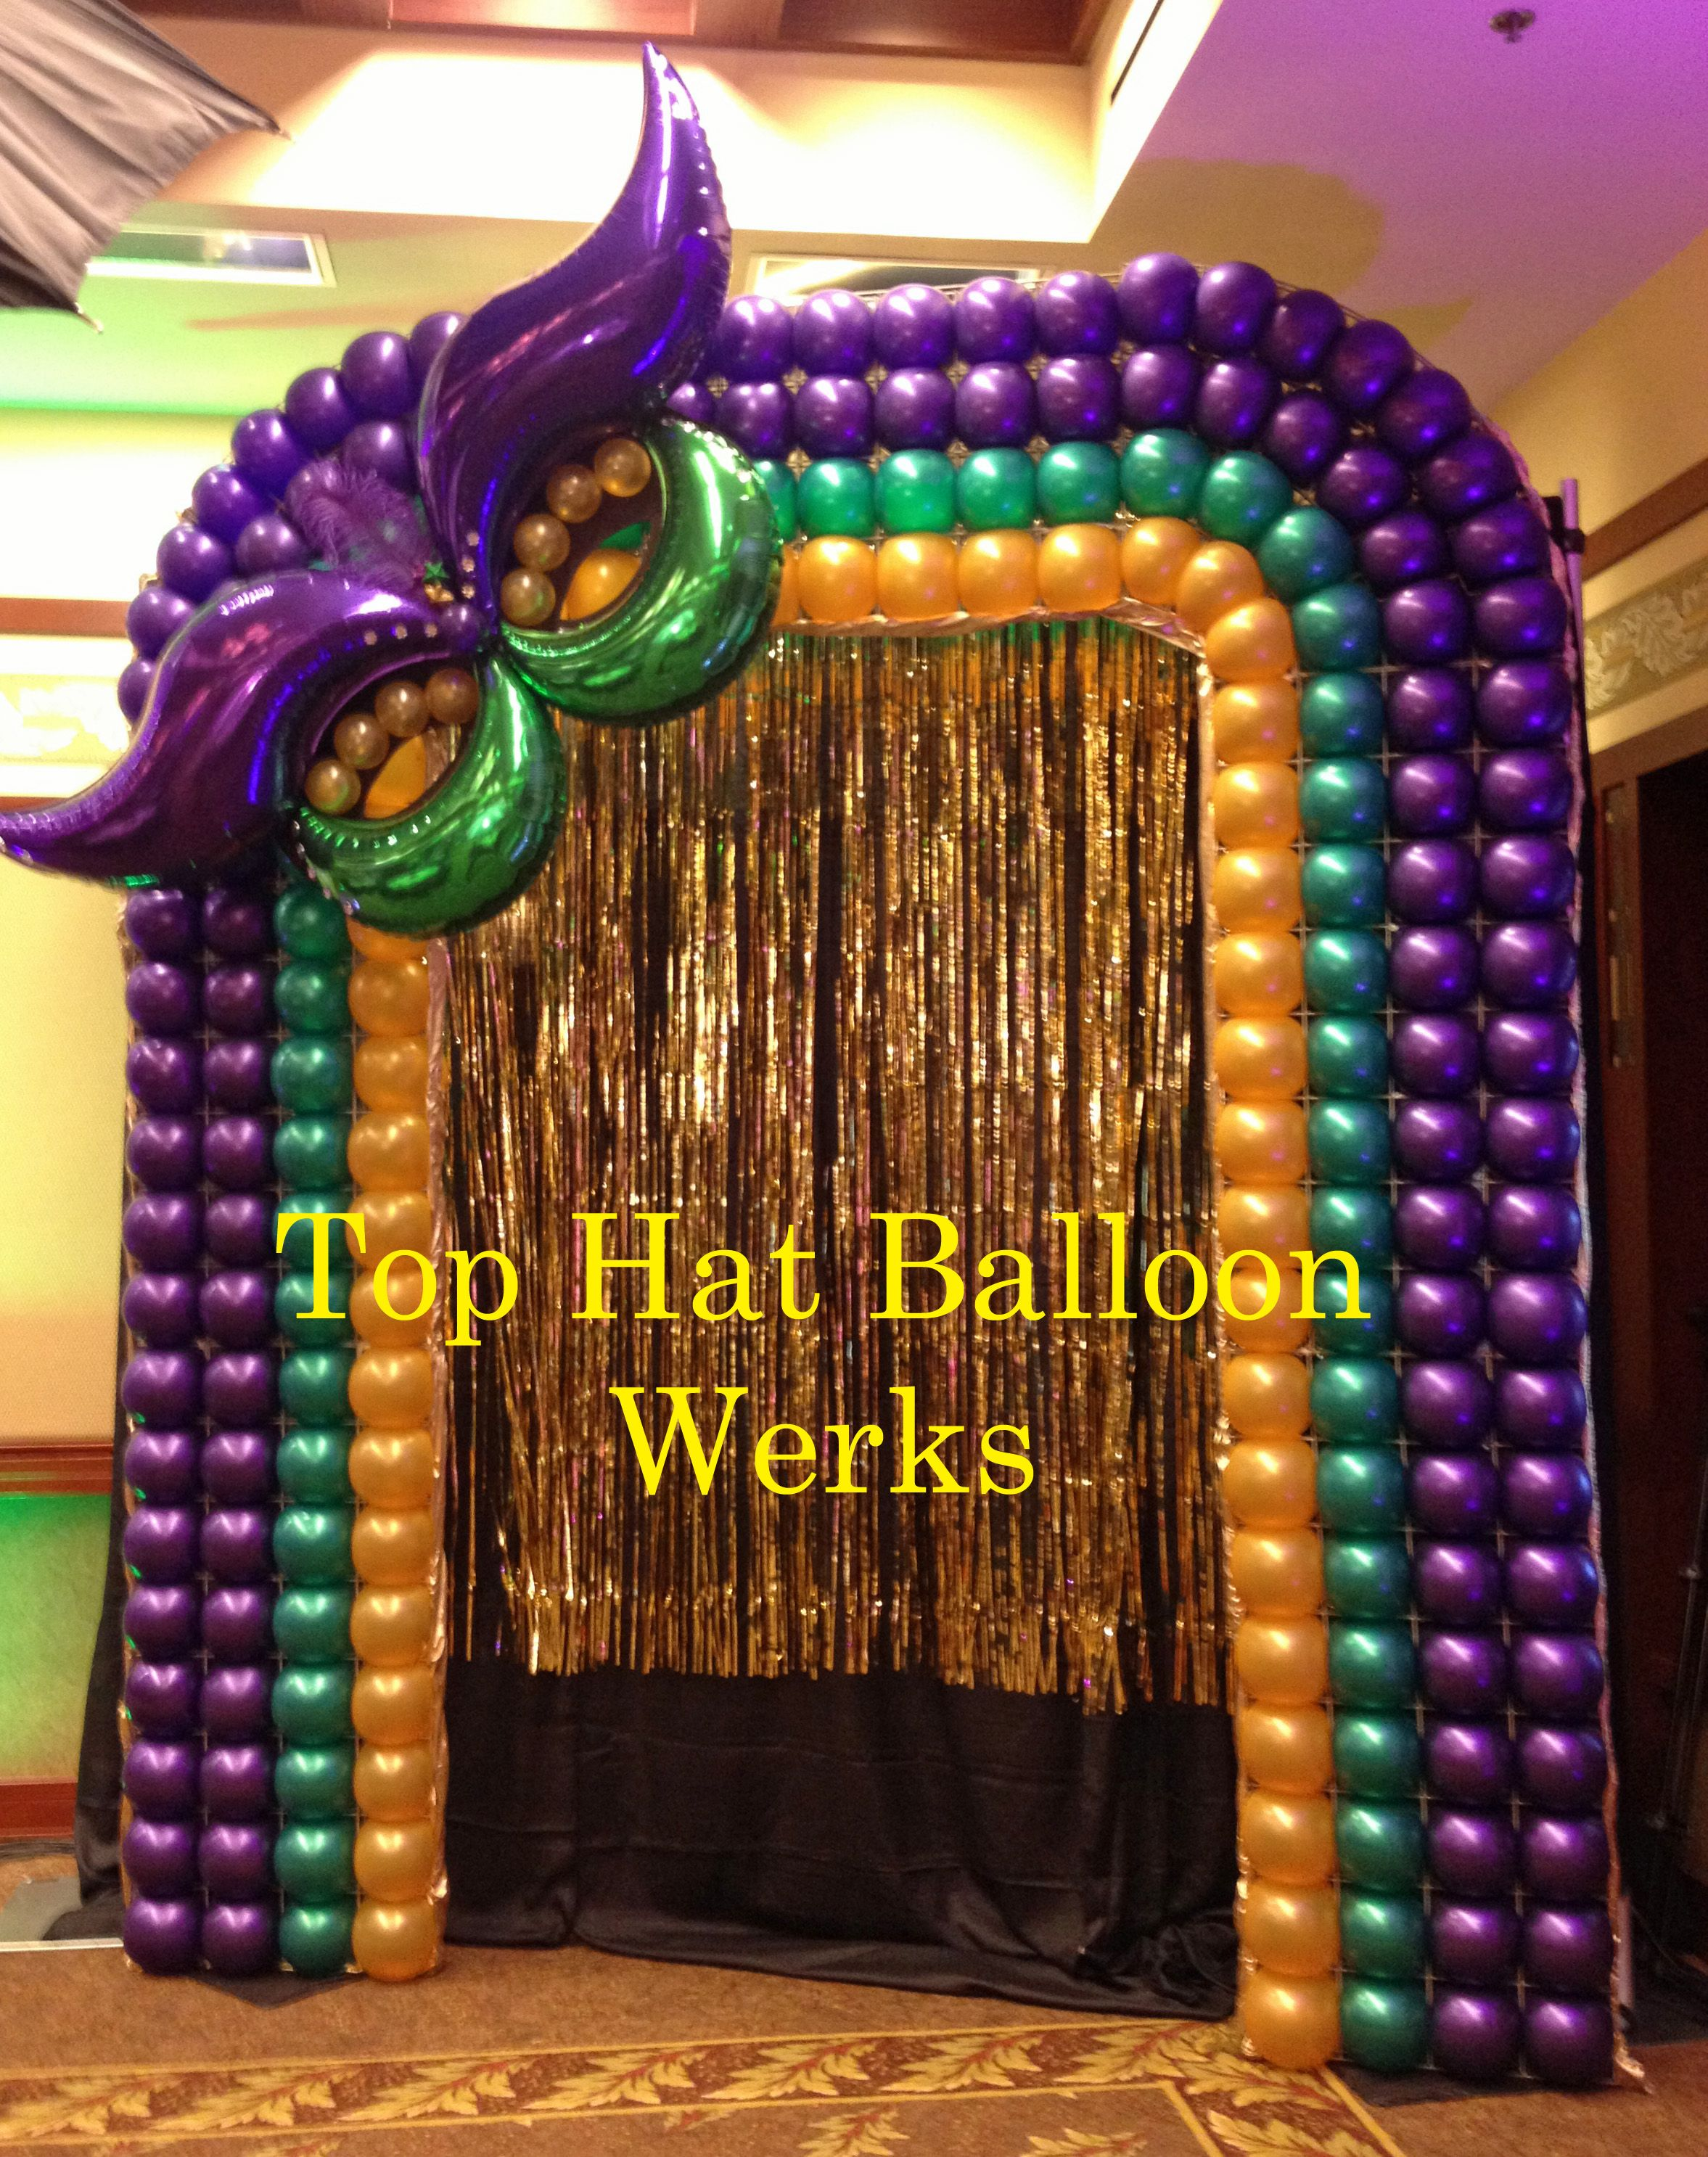 539 best images about Mardi Gras on Pinterest | Balloon ...